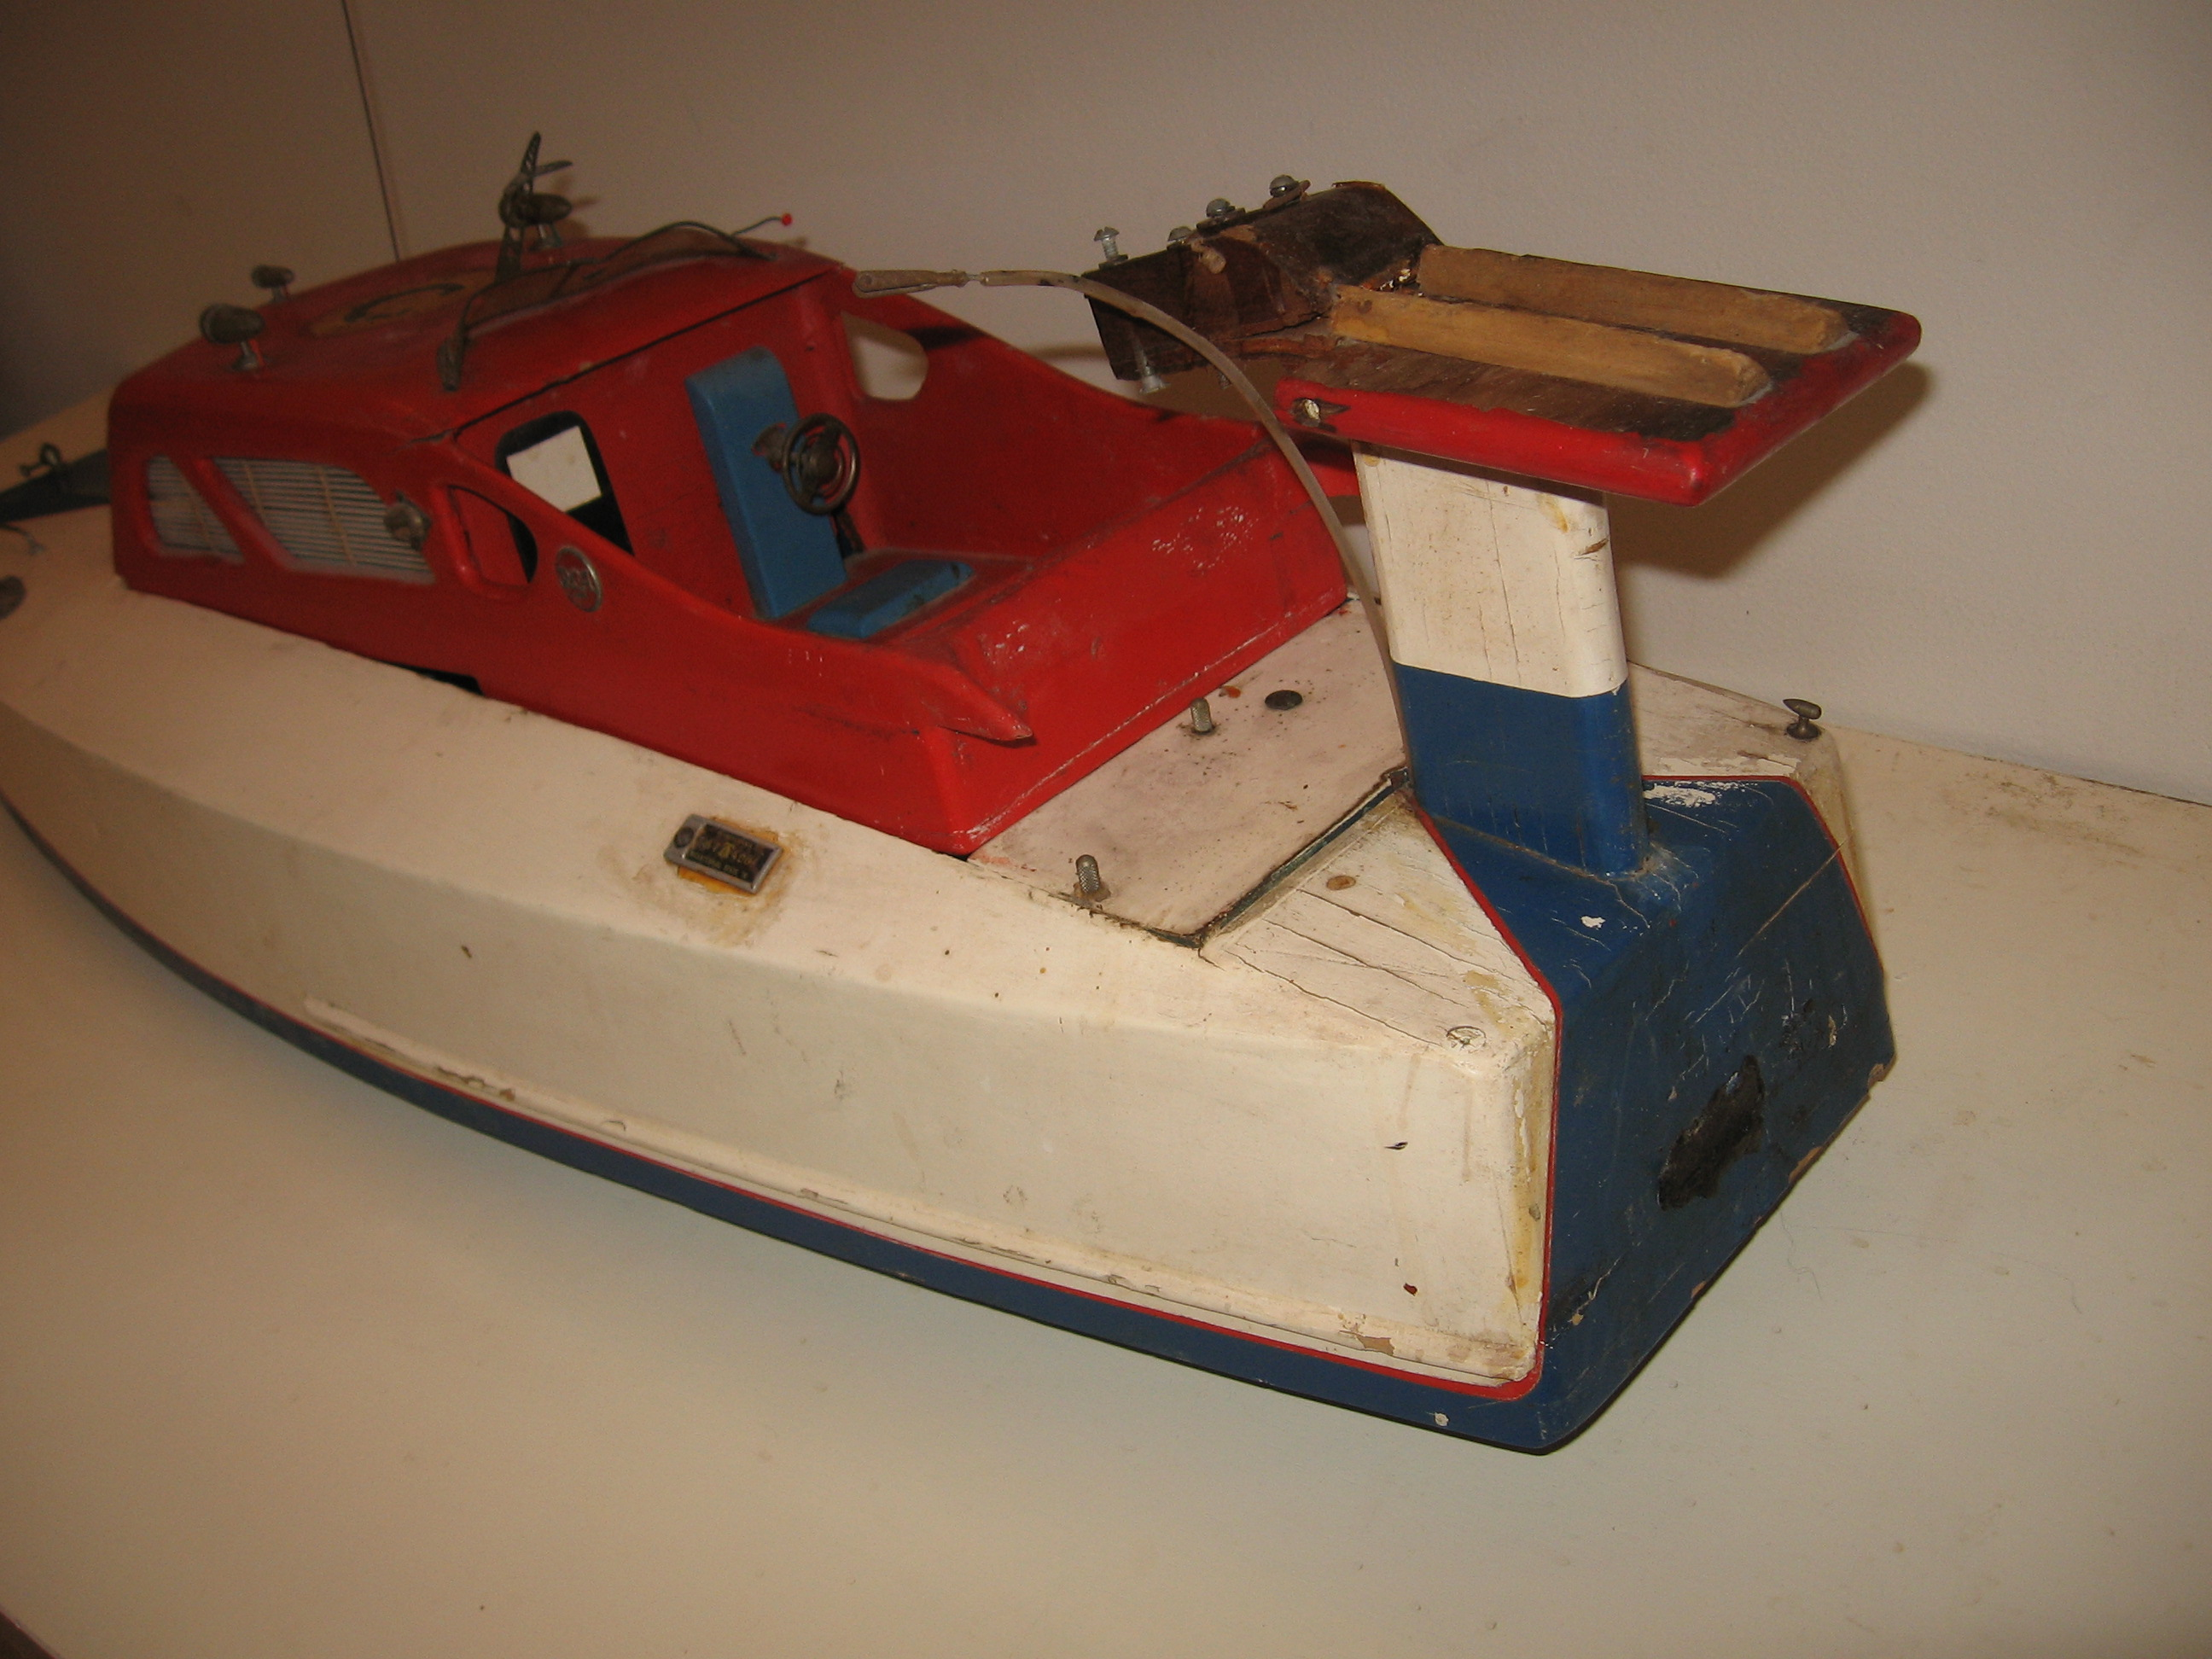 Click image for larger version  Name:RC boats 006.JPG Views:57 Size:1.01 MB ID:1977723